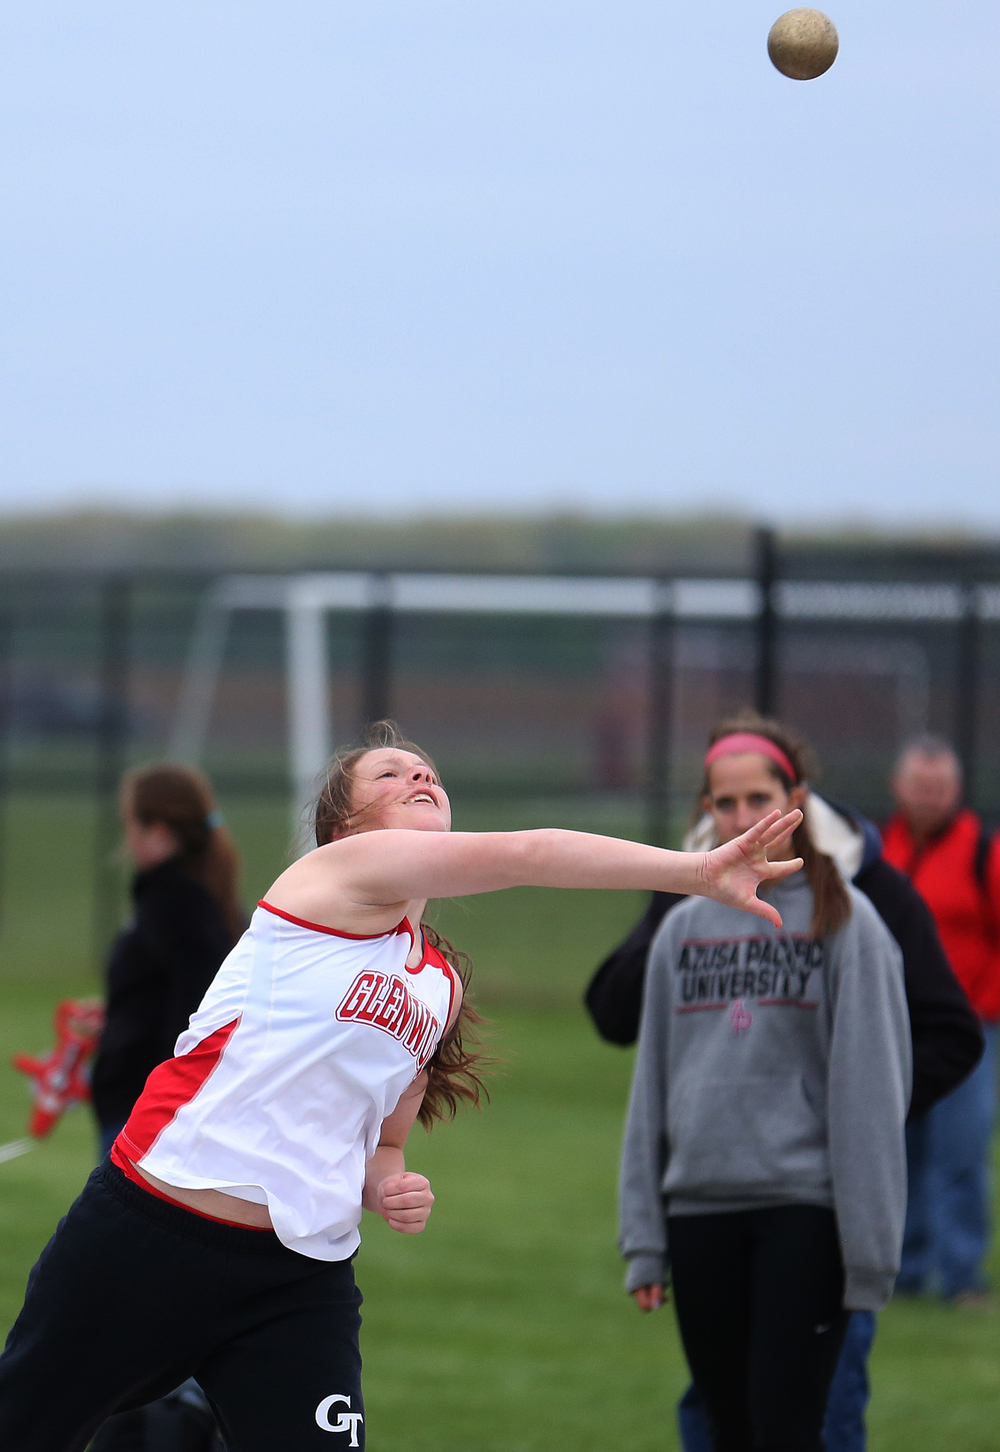 "Glenwood's Mackenzie Bray won the girls shot put event with a heave of 33' 6 3/4"". David Spencer/The State Journal-Register"